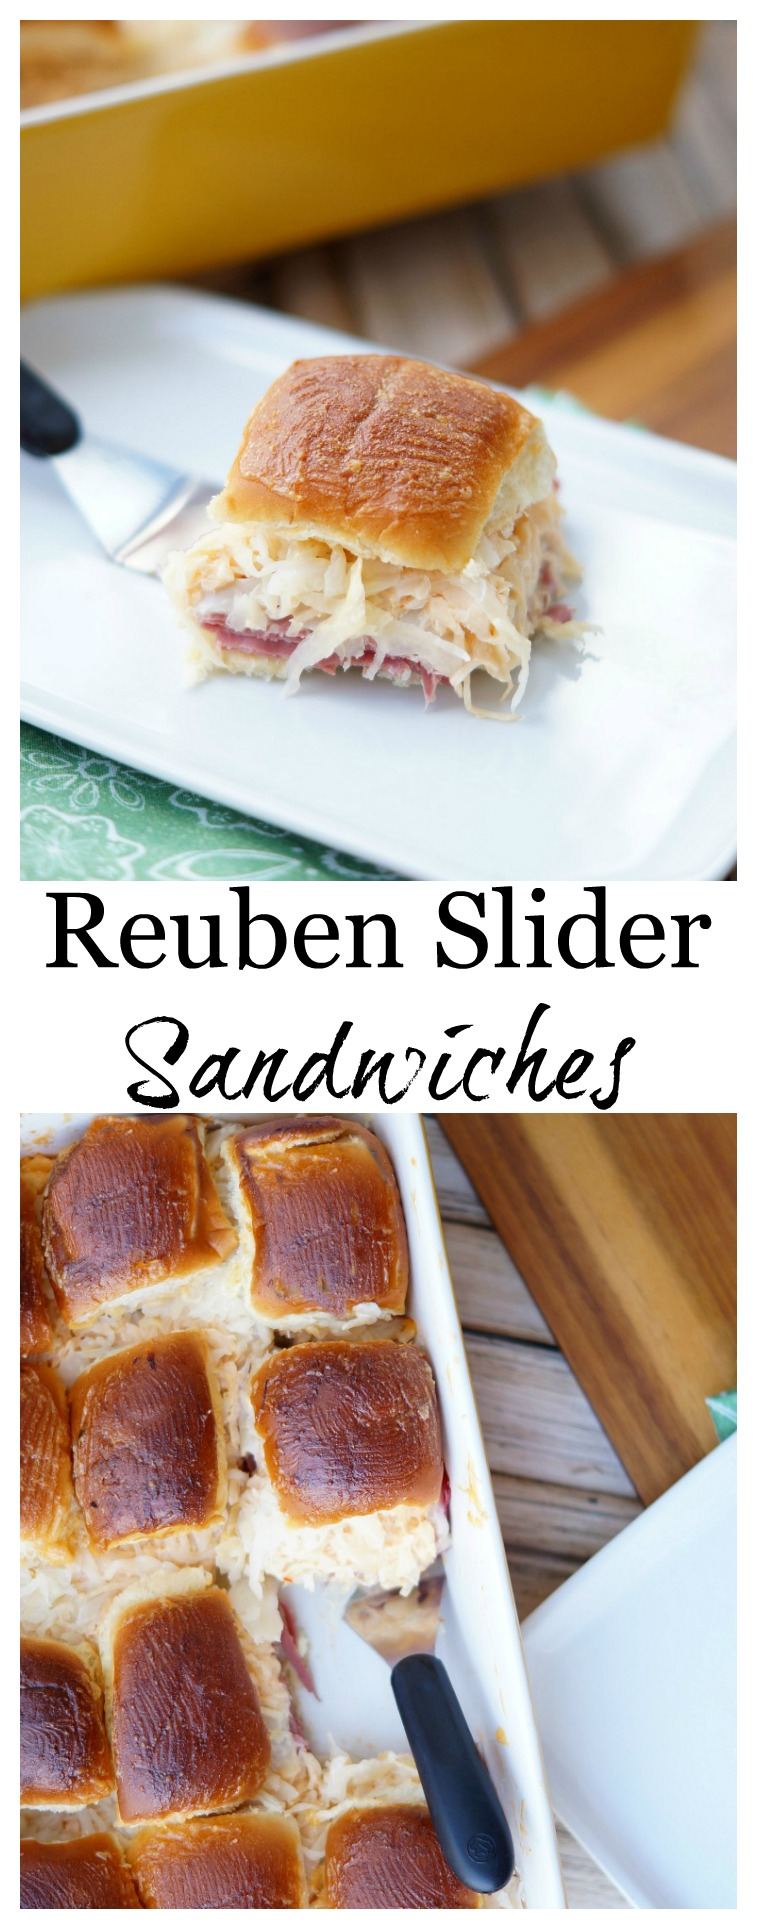 Easy Reuben Slider Sandwiches Perfect for a party!